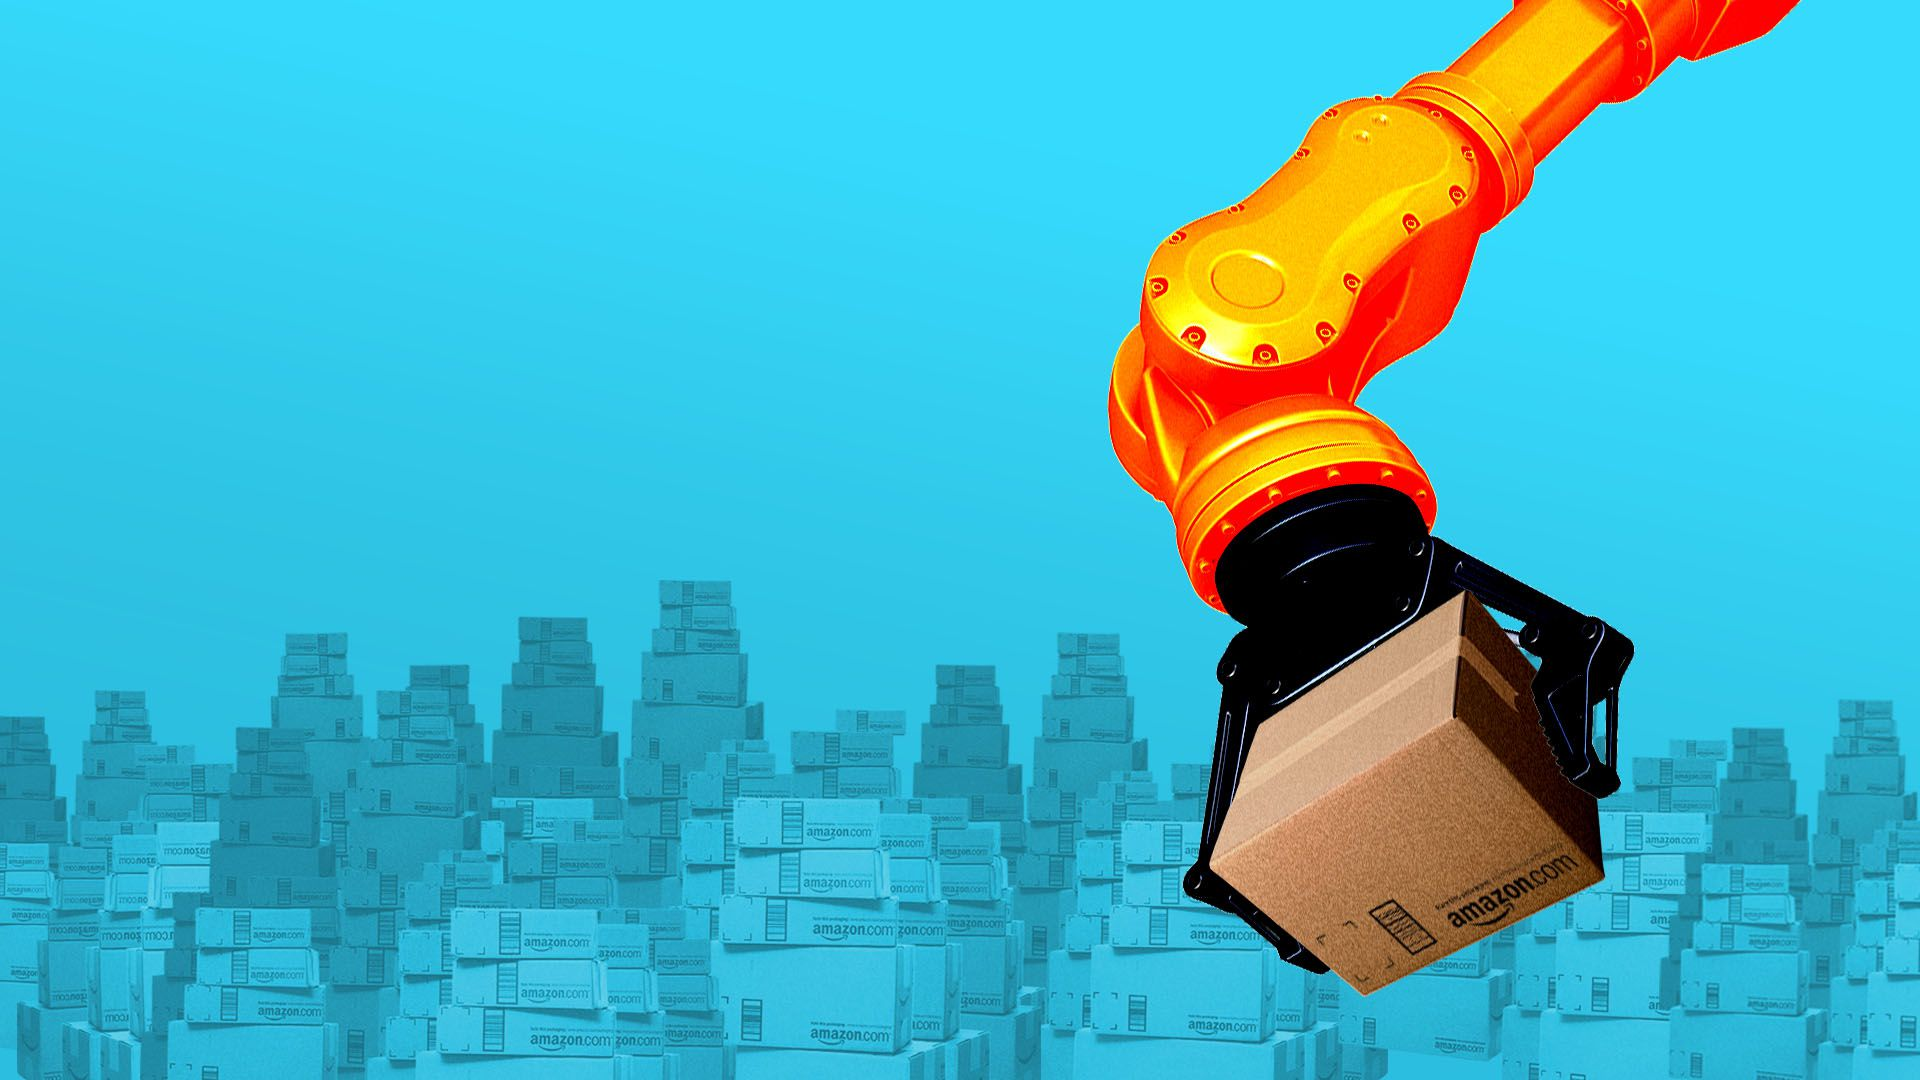 Illustration of a mechanical arm moving a mountain of Amazon boxes